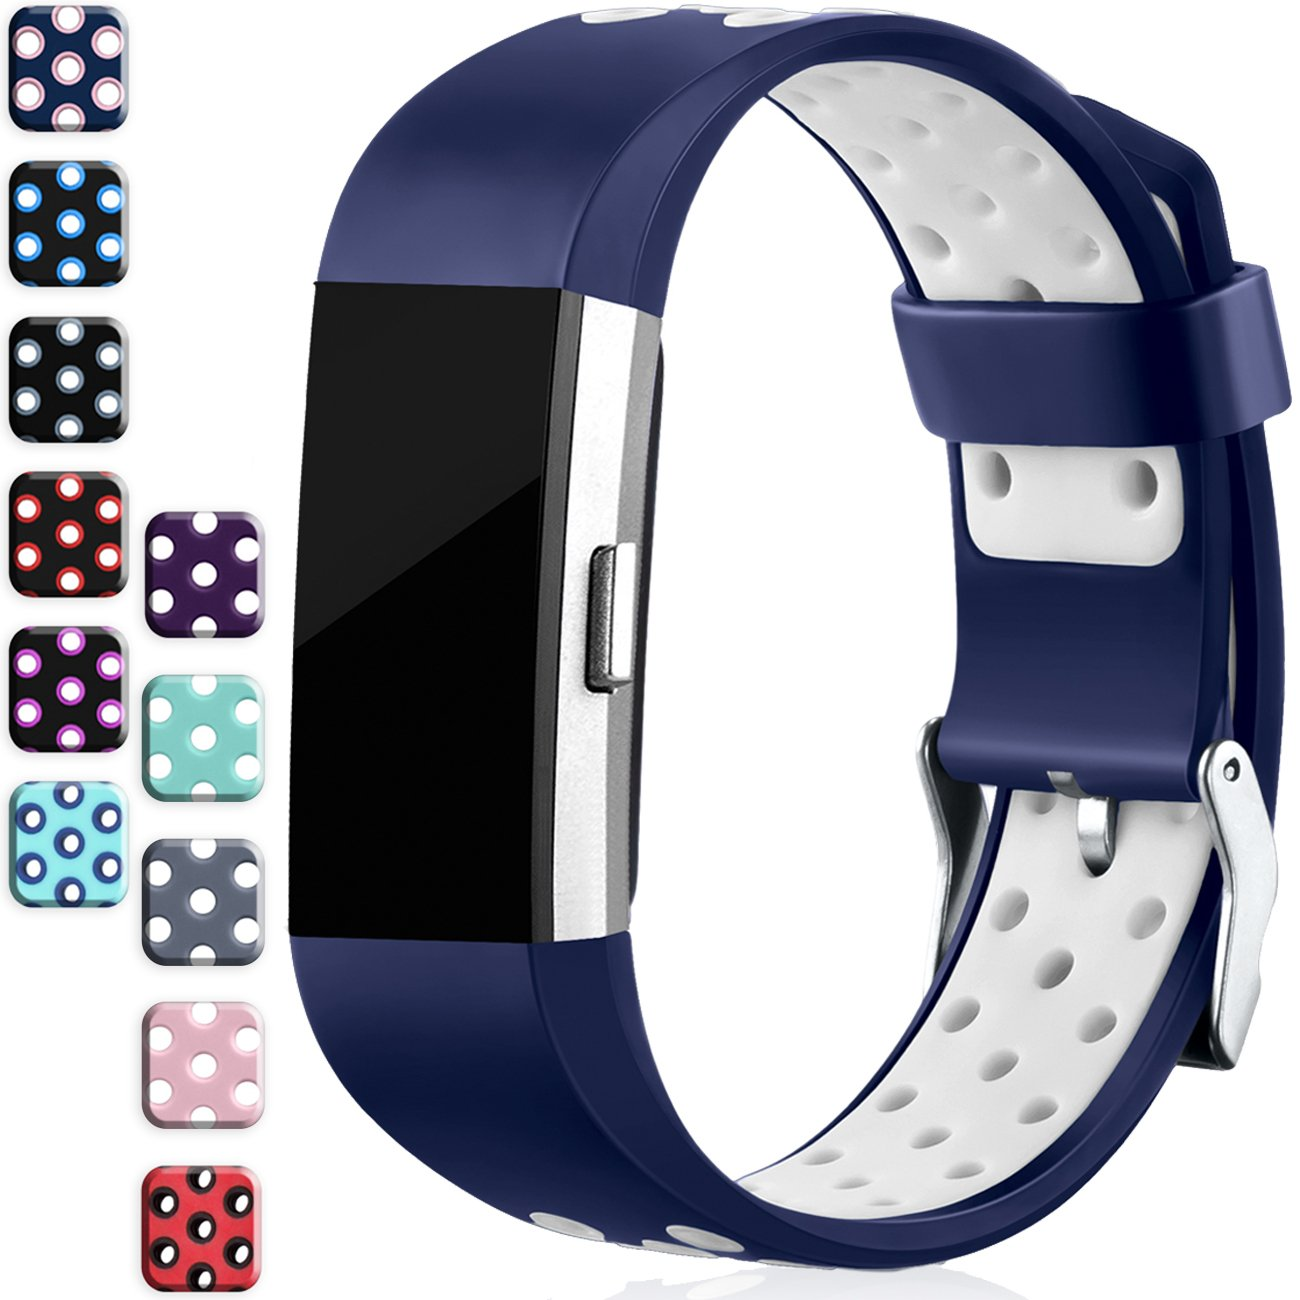 Wepro Fitbit Charge 2バンド、交換用for Fitbit Charge HR、バックル、15色、S、L 2 Small|Blue-on-White Blue-on-White Small B06XWMBVGZ